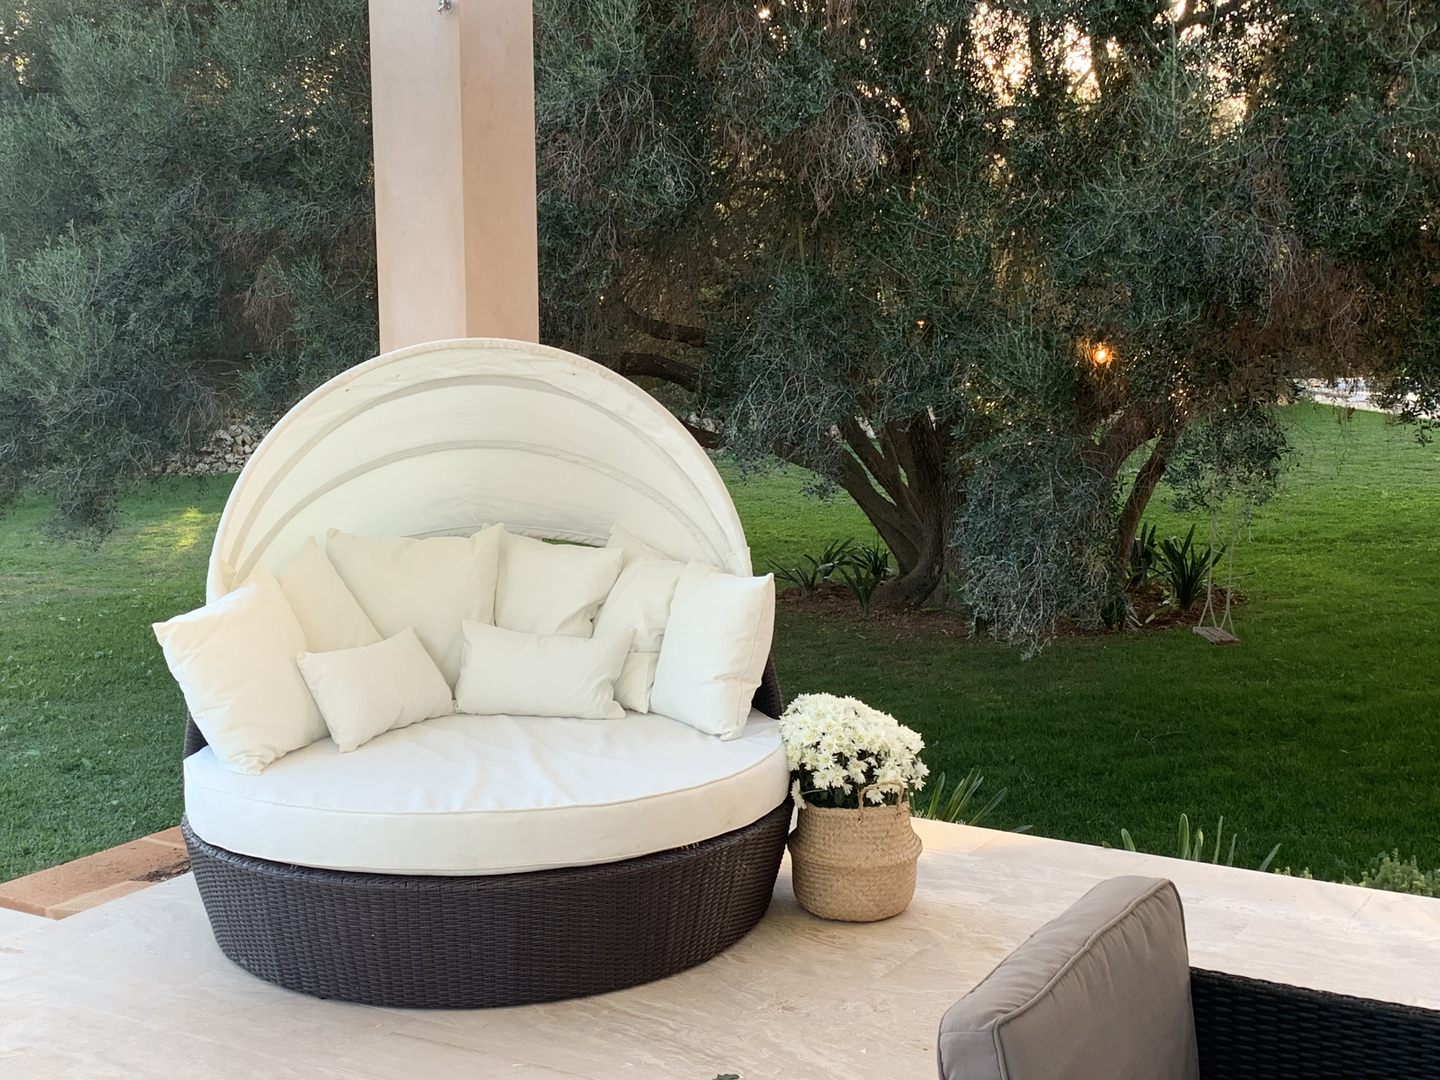 Daybed on terrace under sun sail shade